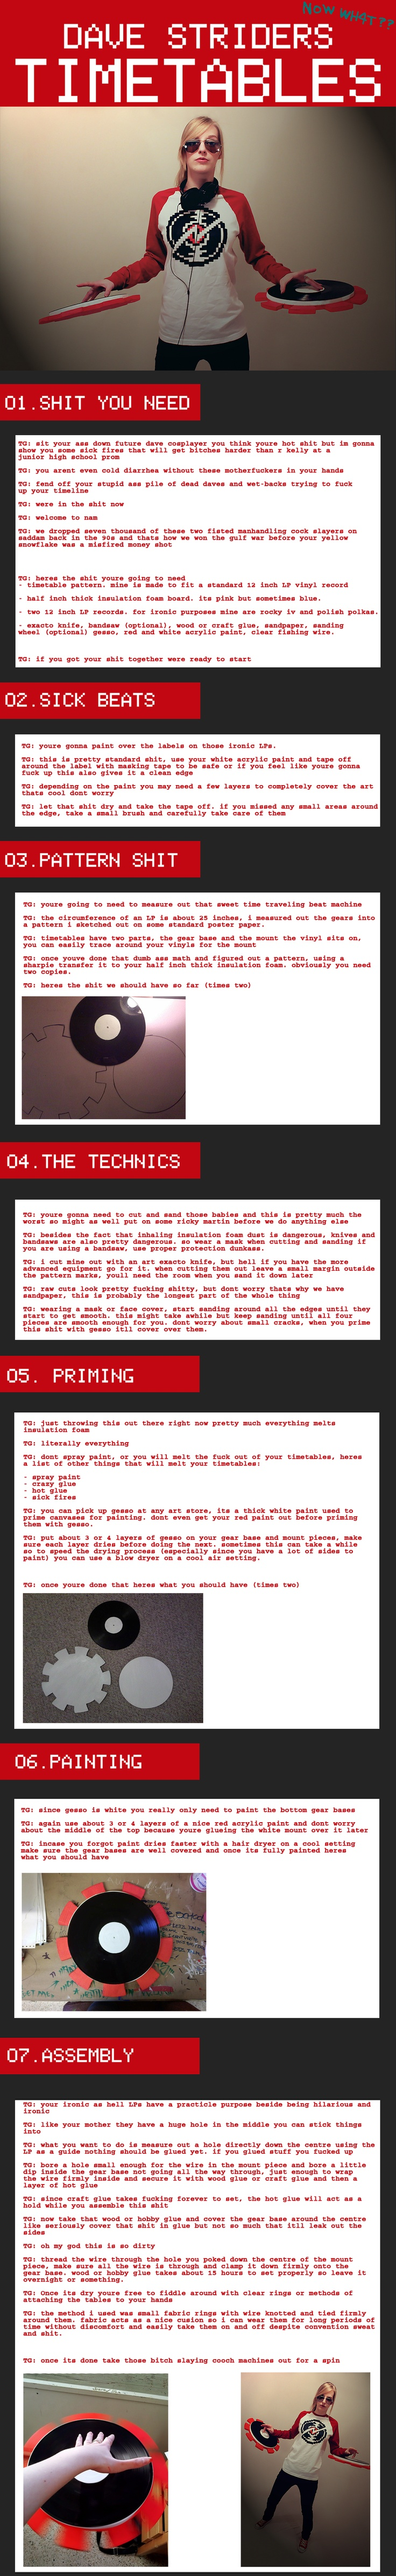 Dave Strider Timetable Tutorial by lunarumms.deviantart.com on @deviantART